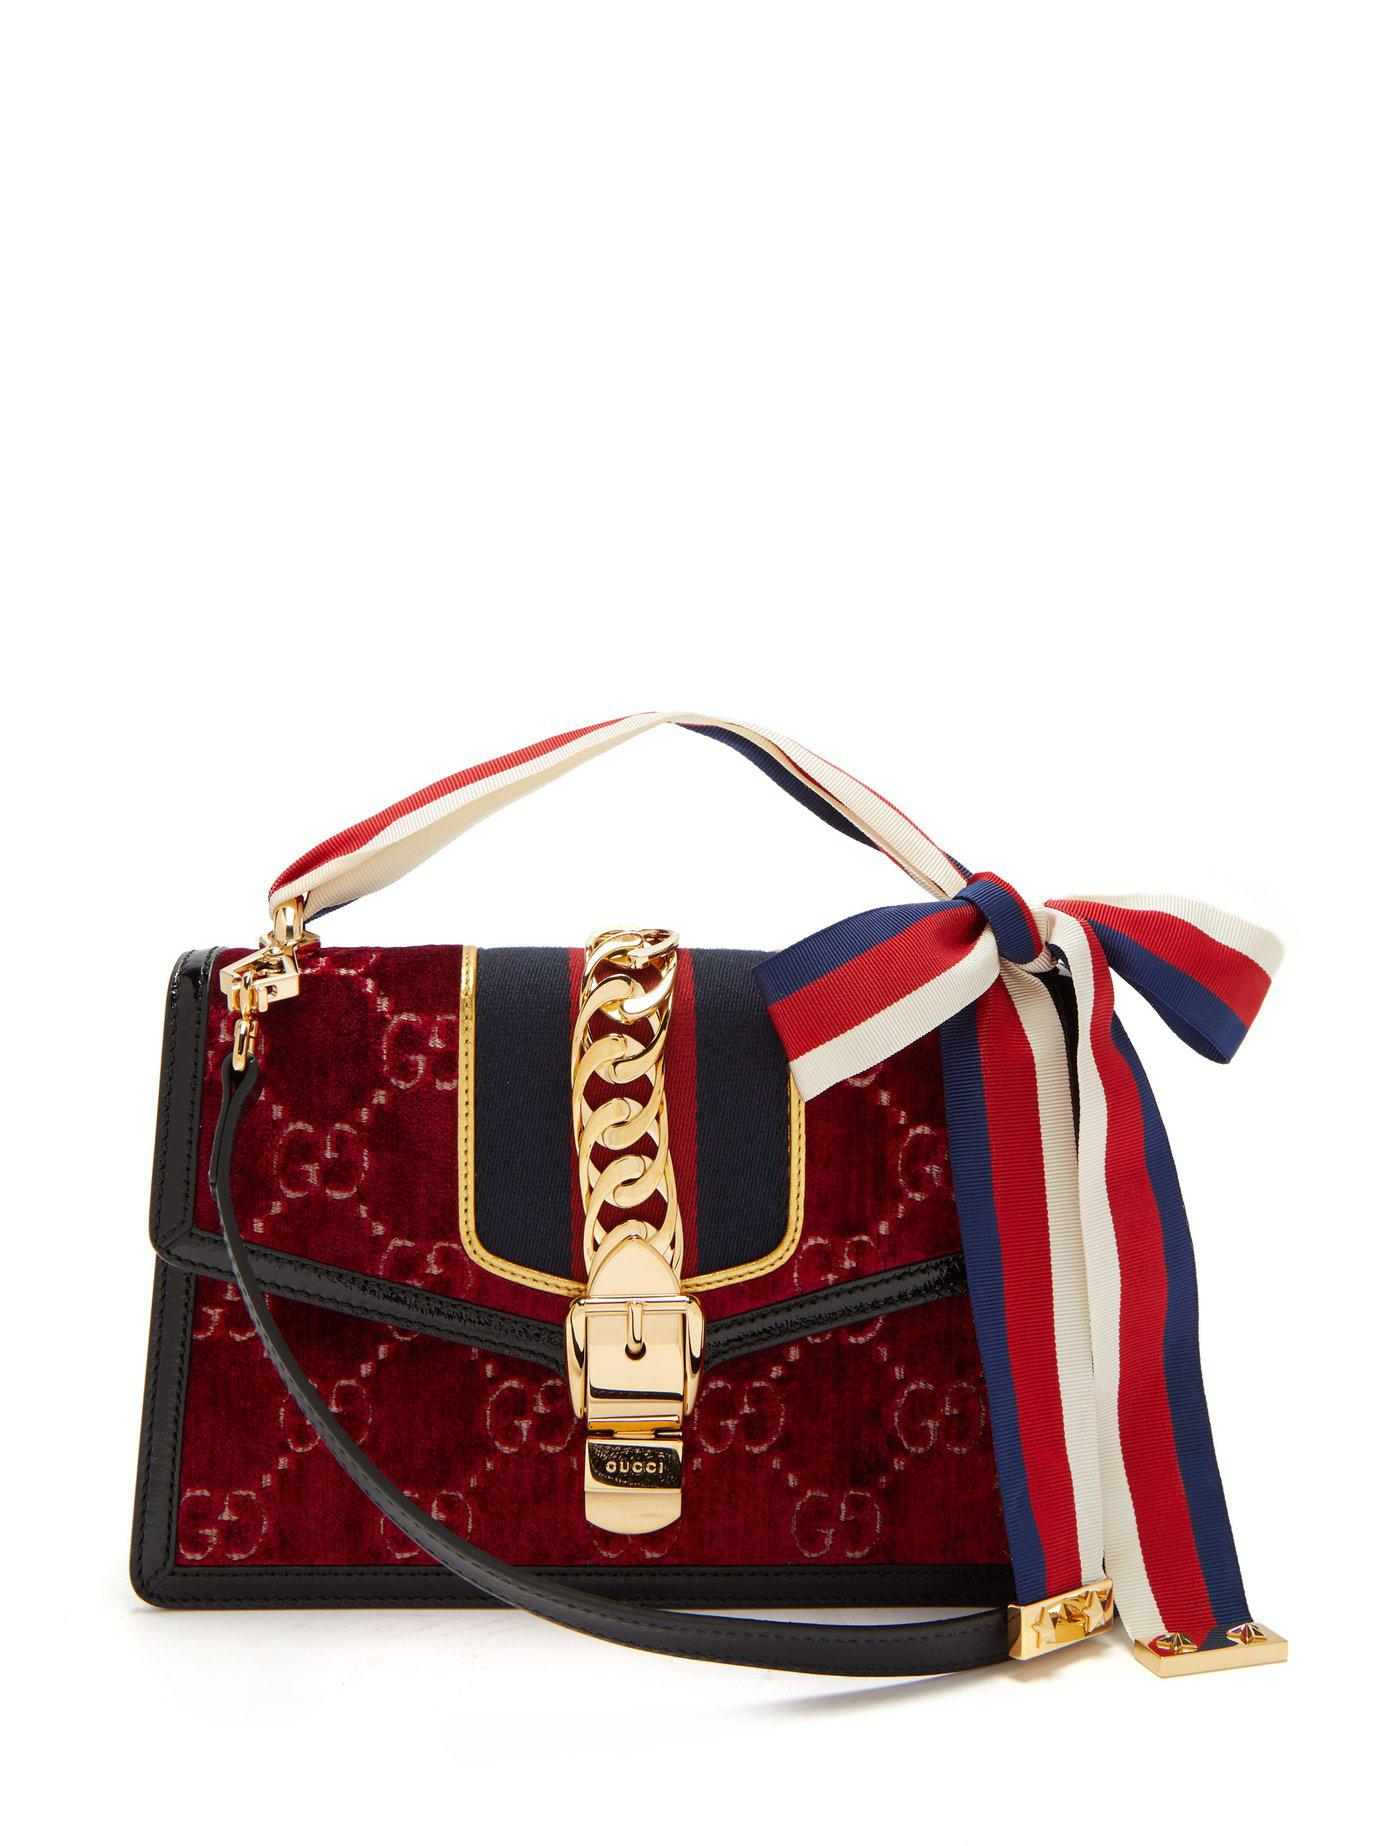 a9a1b2e6b9b Gucci Sylvie Small Velvet Shoulder Bag in Red - Lyst